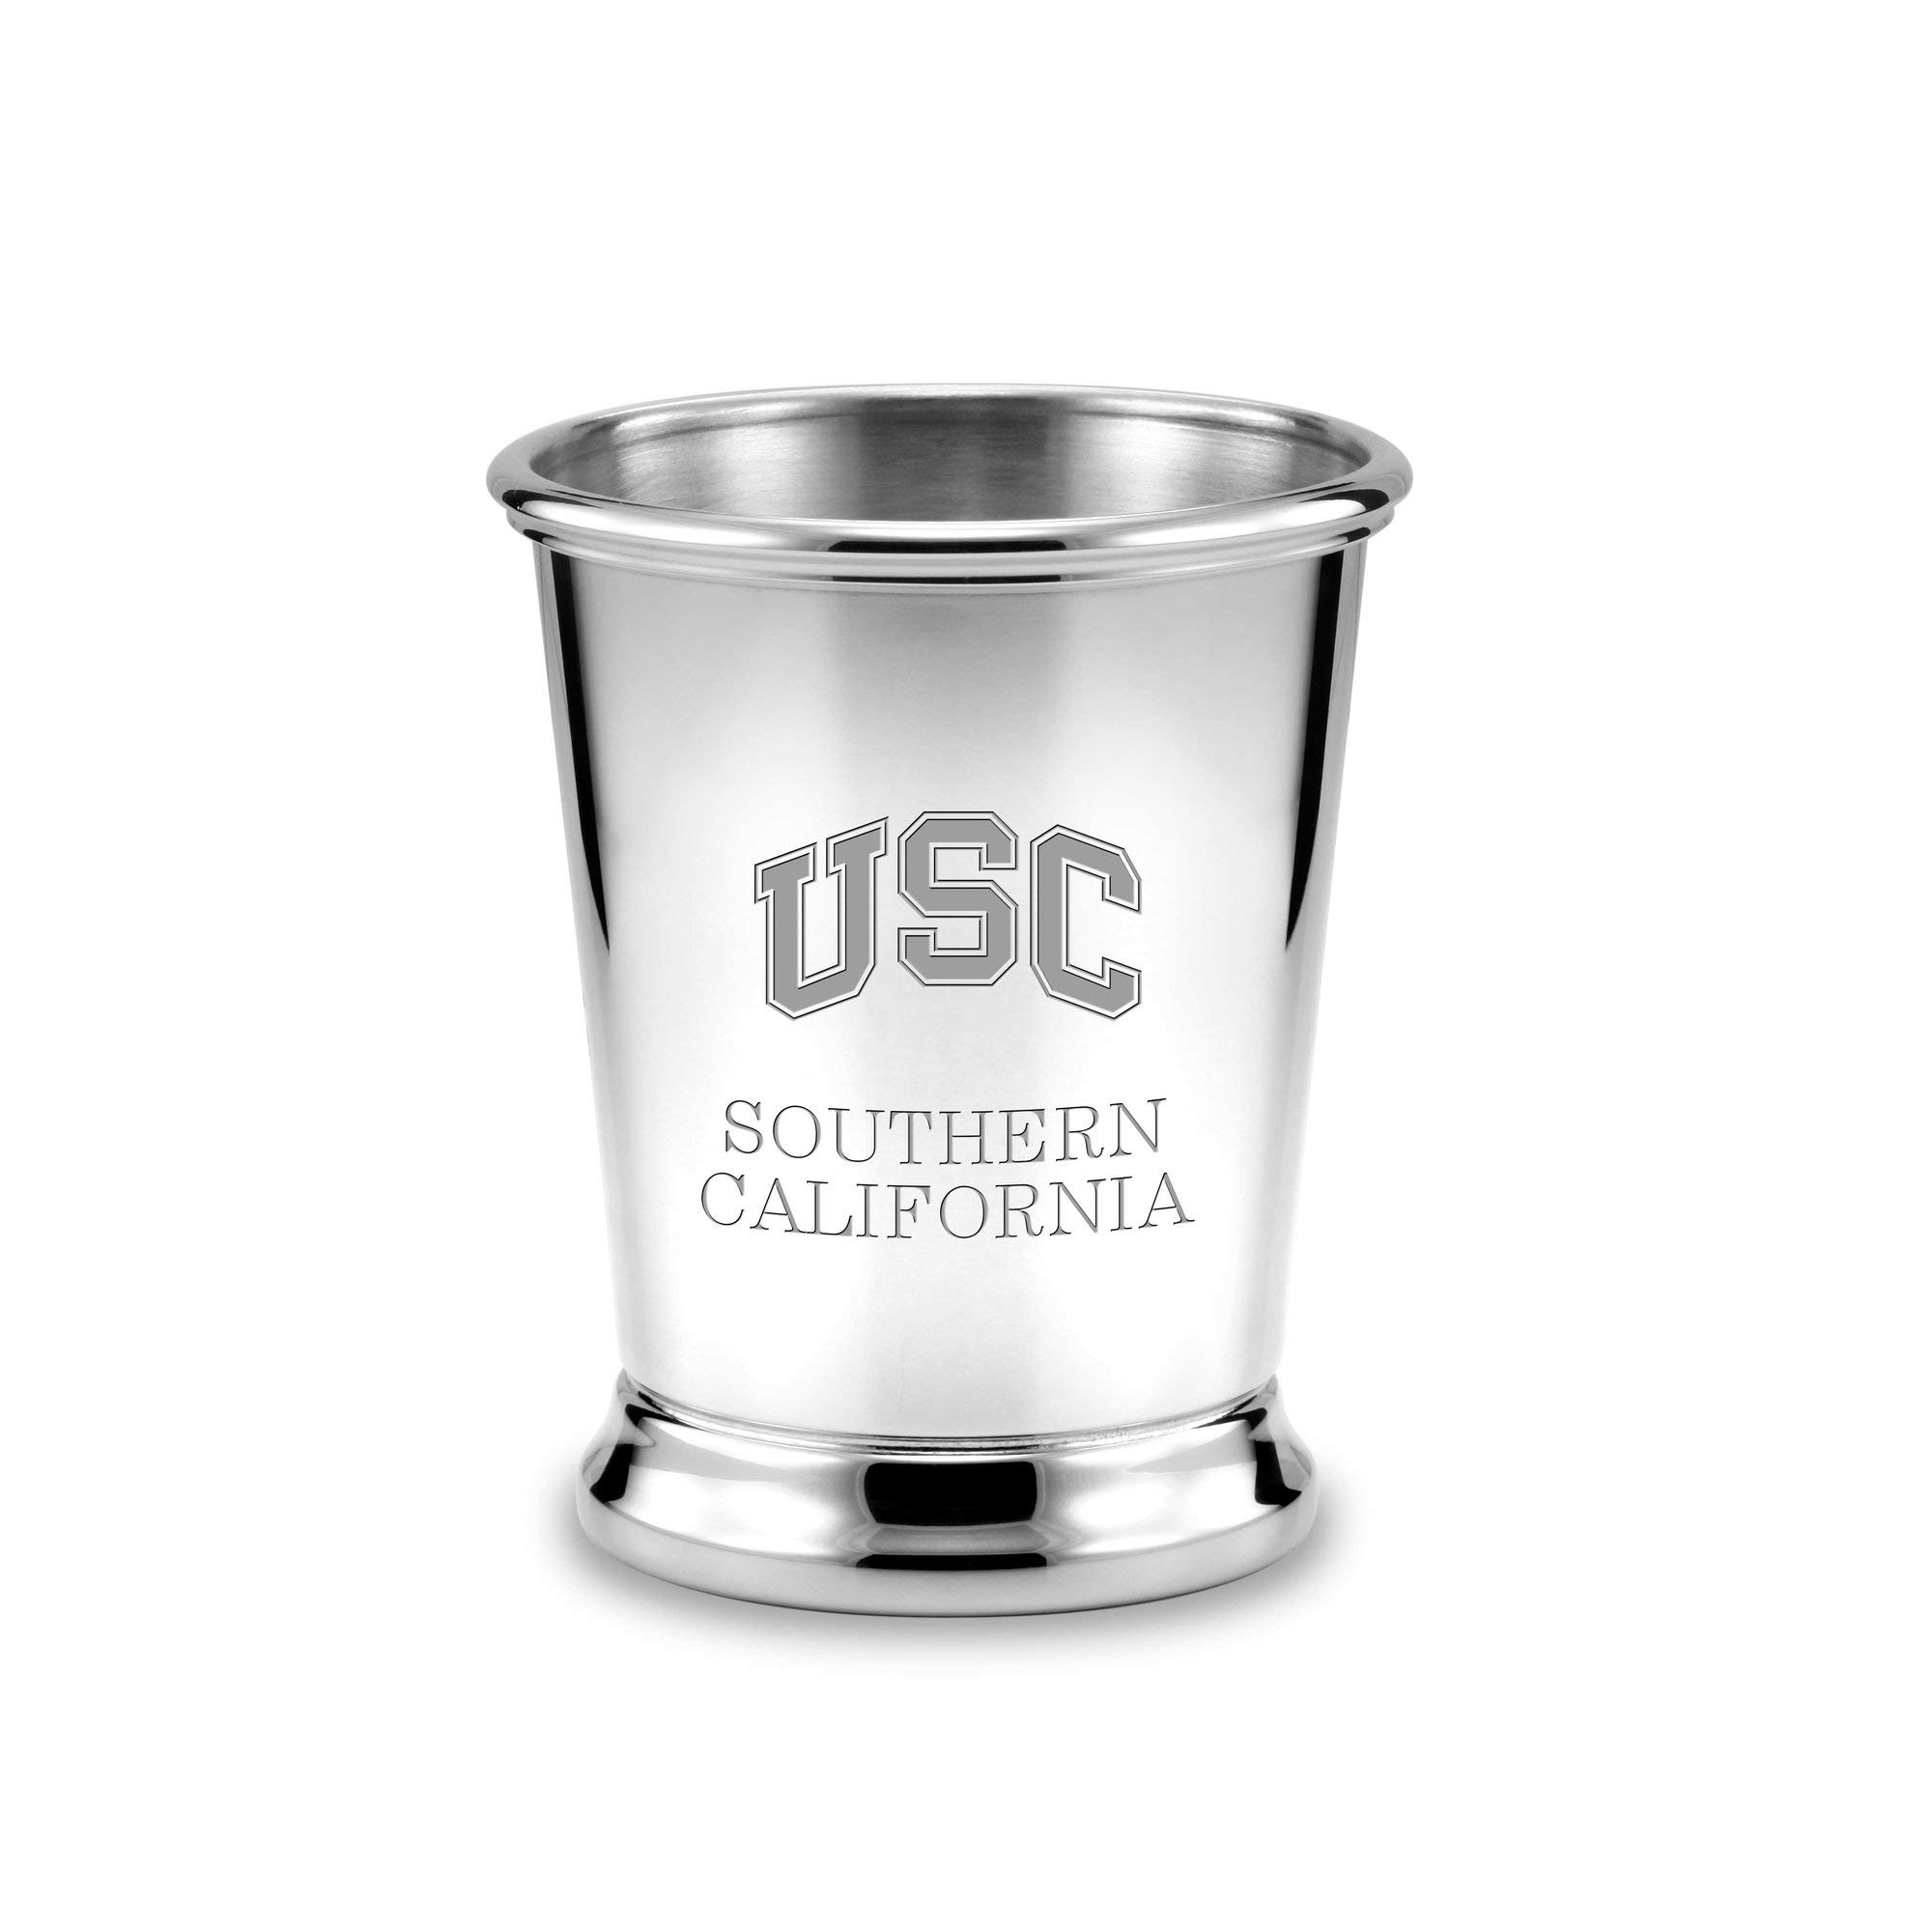 M. LA HART University of Southern California Pewter Julep Cup